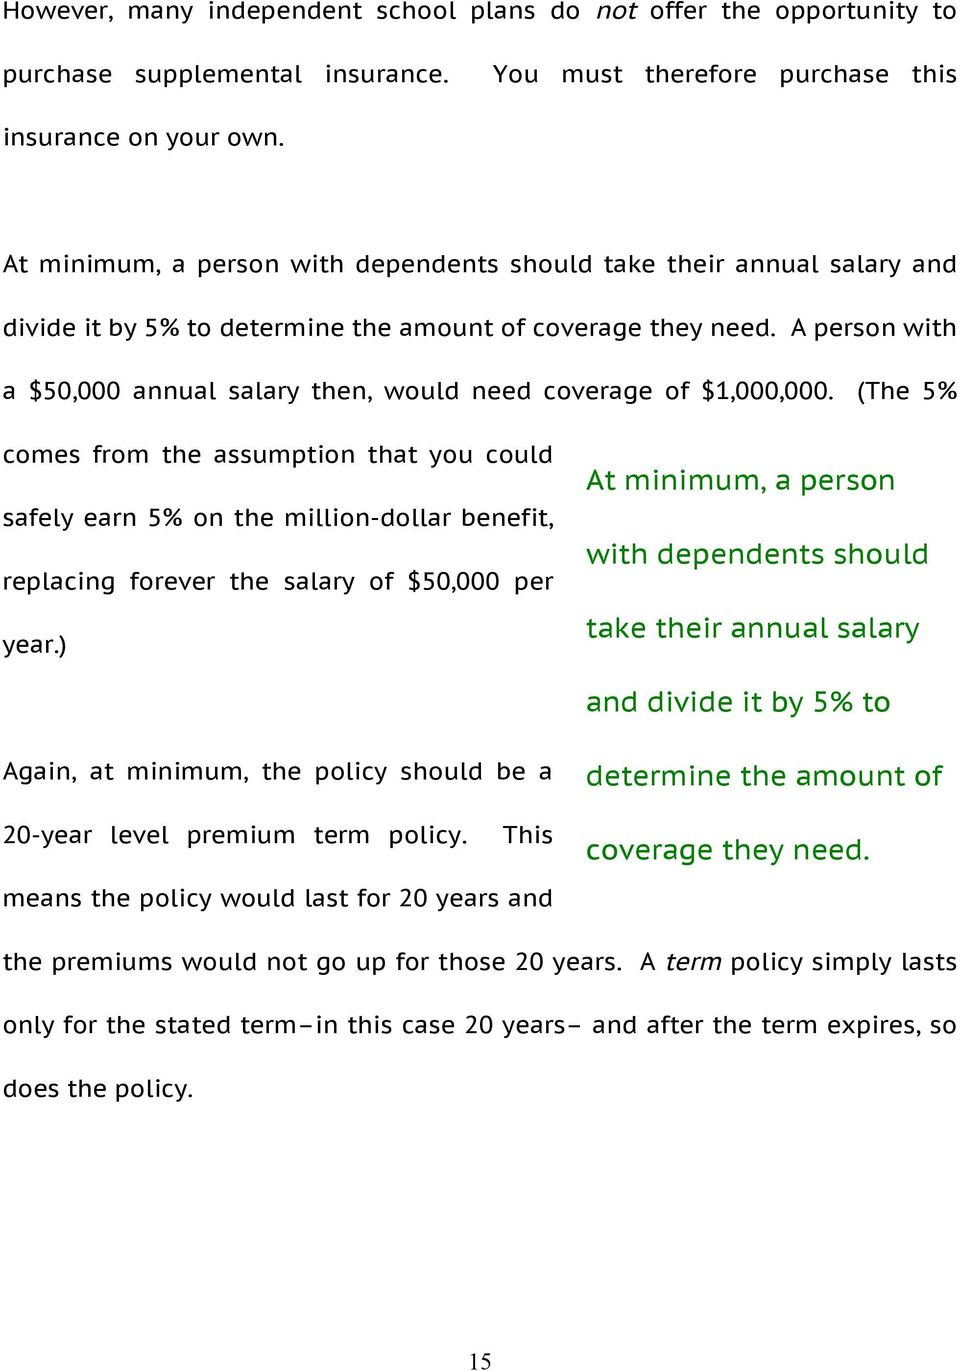 A person with a $50,000 annual salary then, would need coverage of $1,000,000.